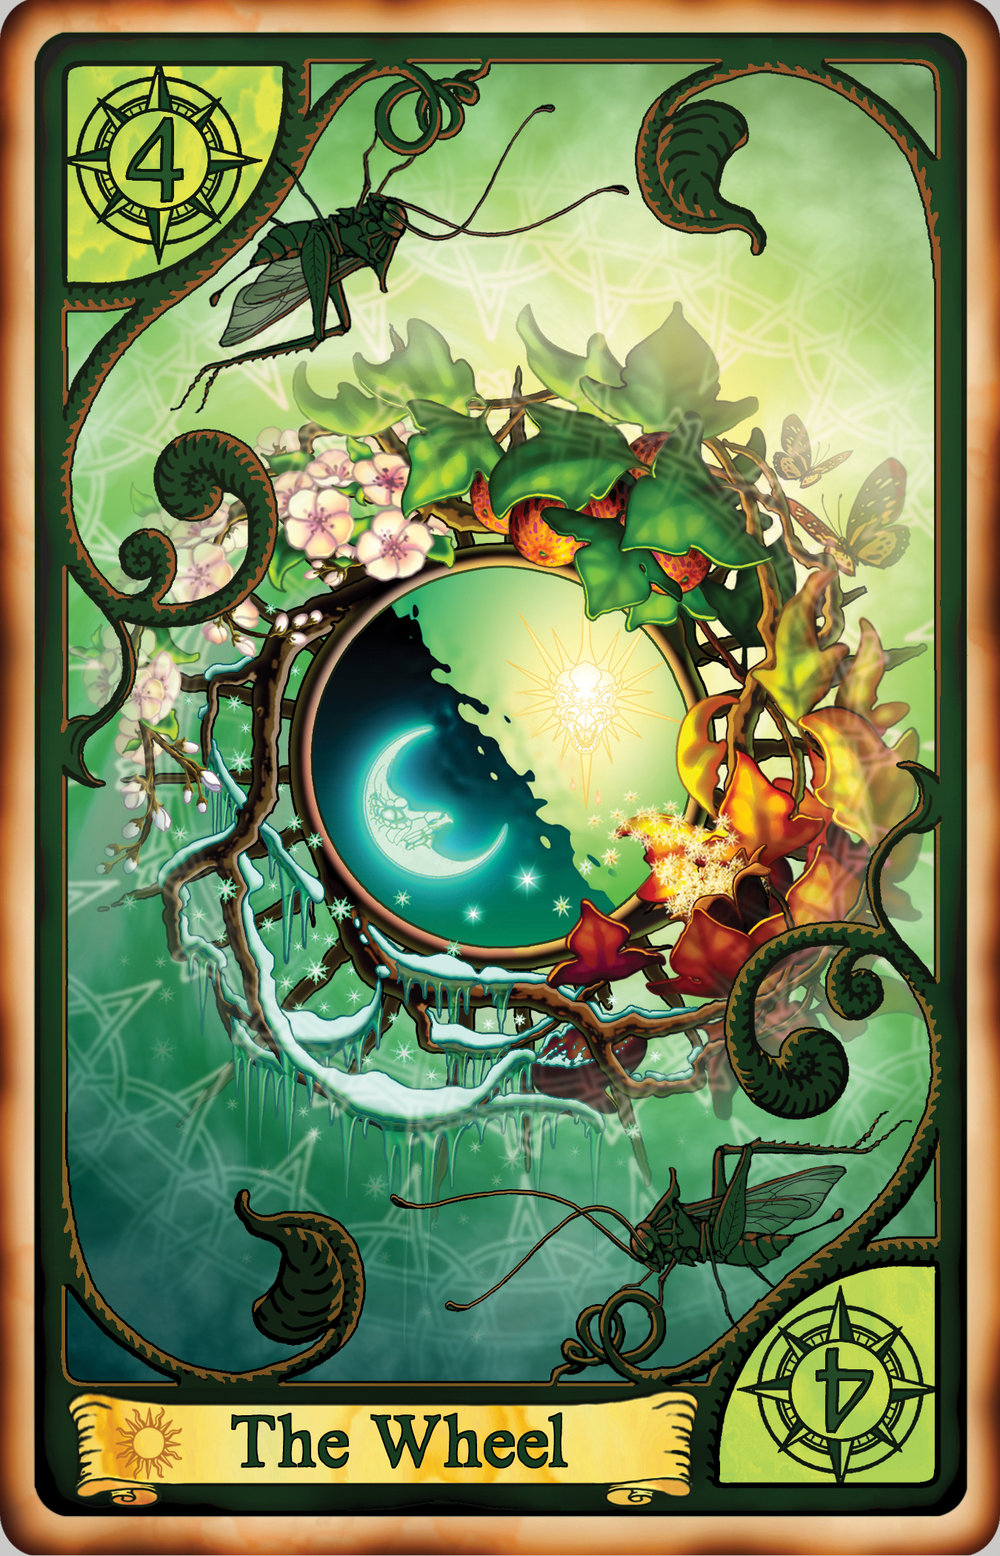 Upcoming Rochi Card Game - Enjoy more of Mark's art in this fabulous upcoming card game inspired by Sonia Lyris's SEER series. Take a look!